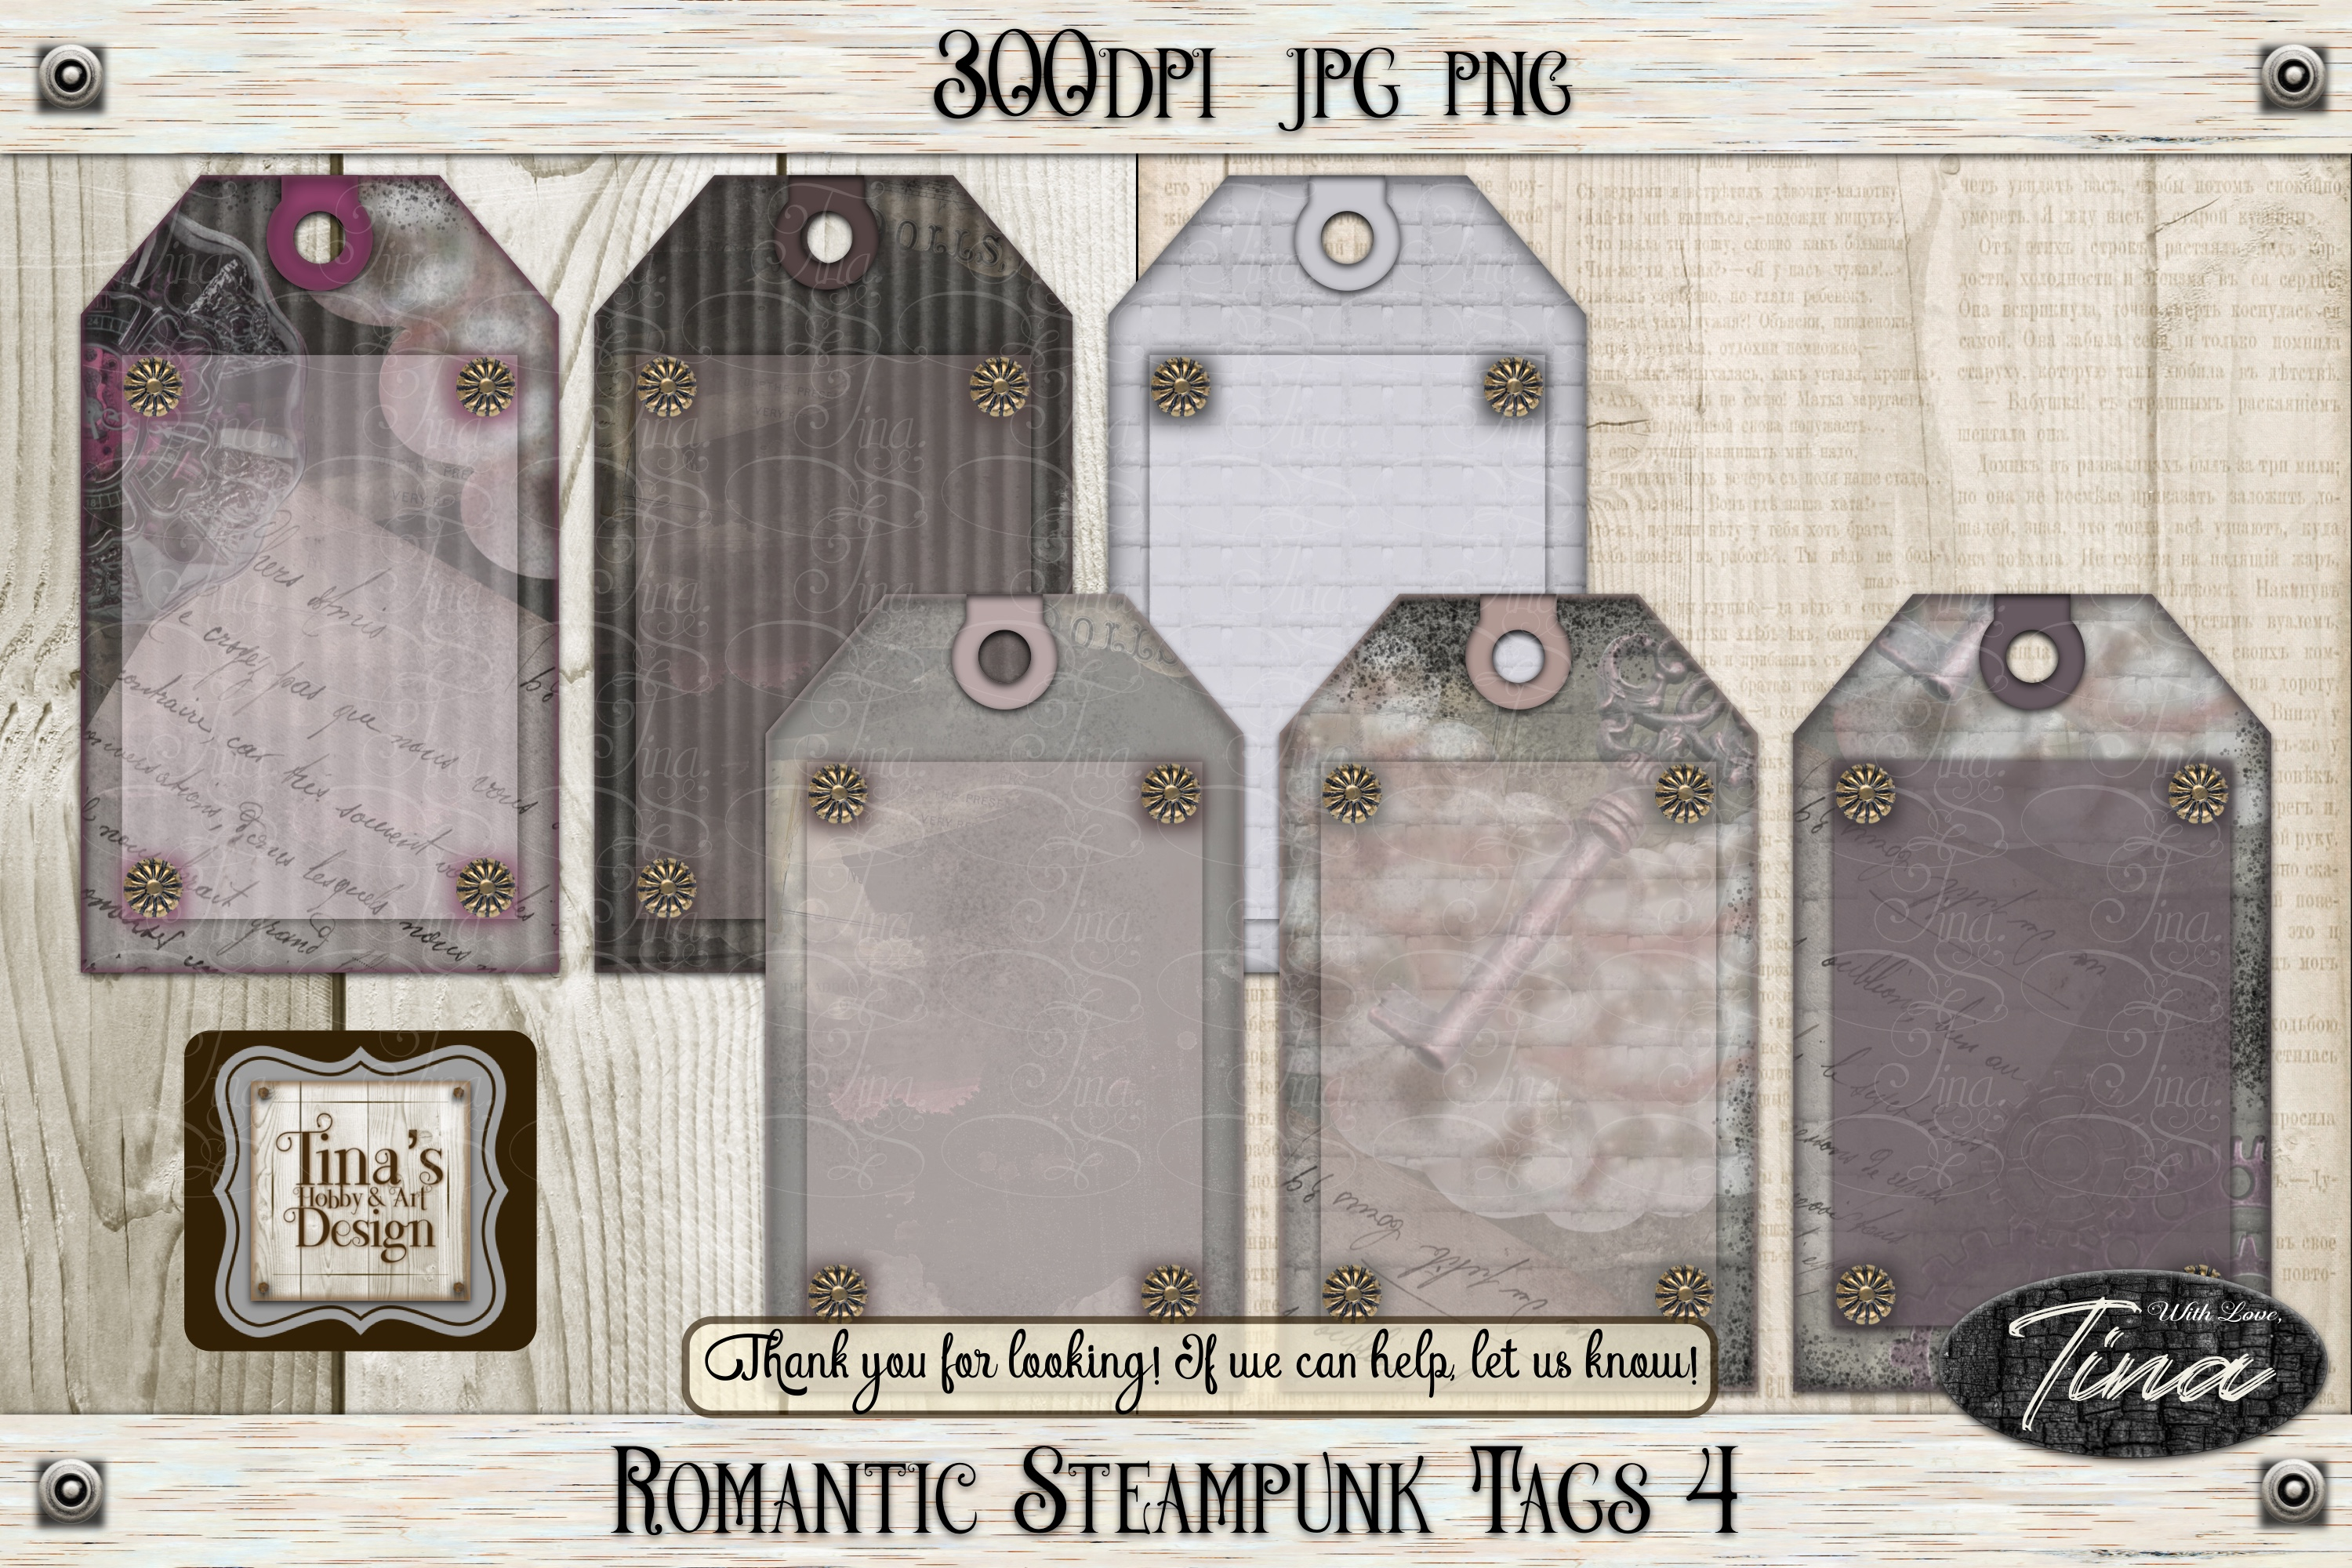 Romantic Steampunk Tags 1 Collage Mauve Grunge 101918RST1 example image 6